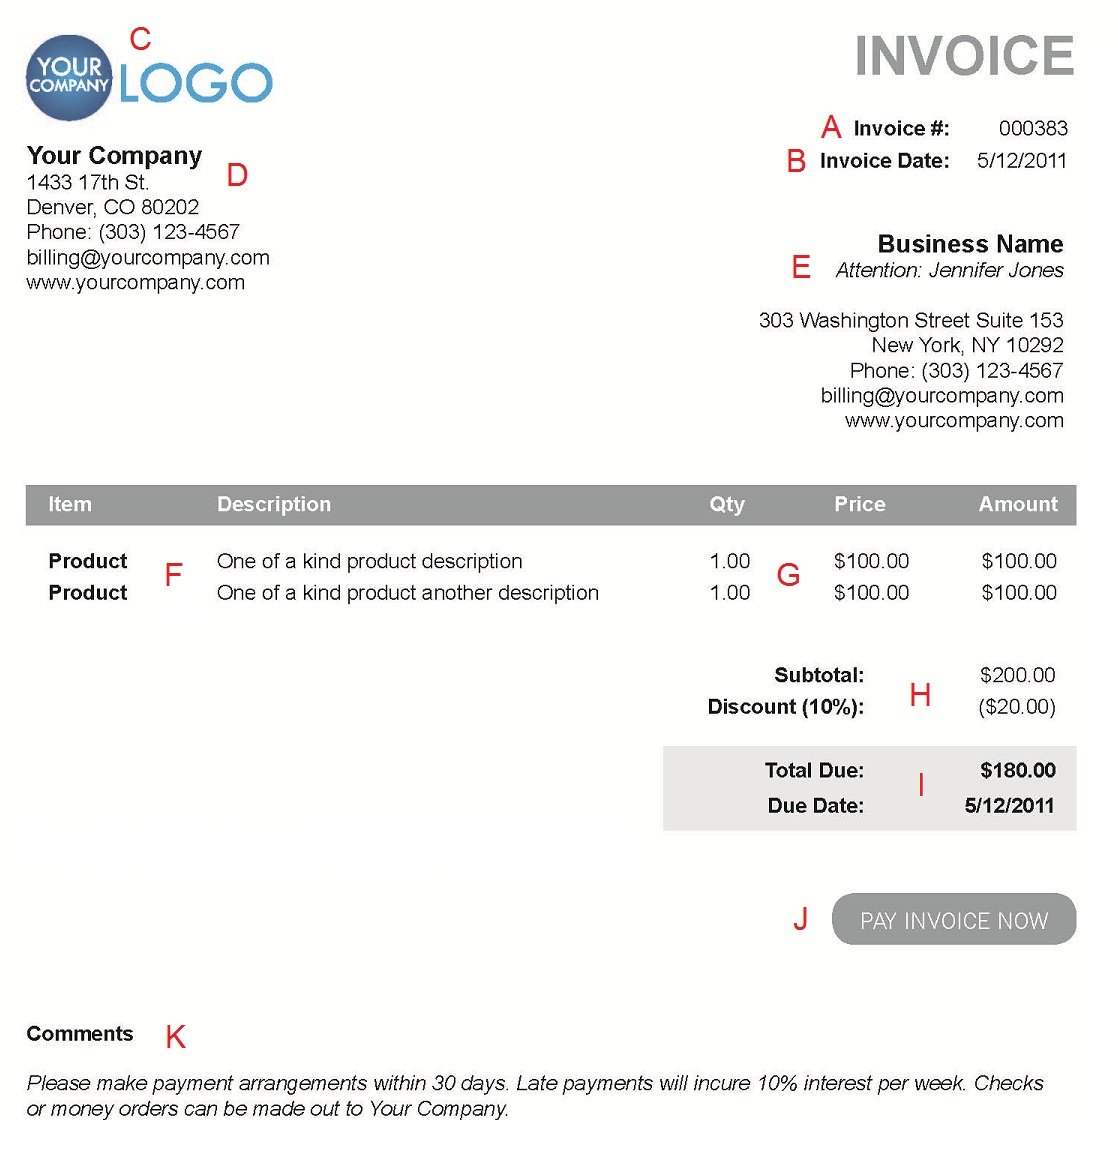 Usdgus  Surprising The  Different Sections Of An Electronic Payment Invoice With Goodlooking A  With Agreeable Rental Car Invoice Also Printable Invoice Online In Addition Suicide Invoice And Example Of Invoice For Services As Well As Mac Invoice Additionally Template For Proforma Invoice From Paysimplecom With Usdgus  Goodlooking The  Different Sections Of An Electronic Payment Invoice With Agreeable A  And Surprising Rental Car Invoice Also Printable Invoice Online In Addition Suicide Invoice From Paysimplecom